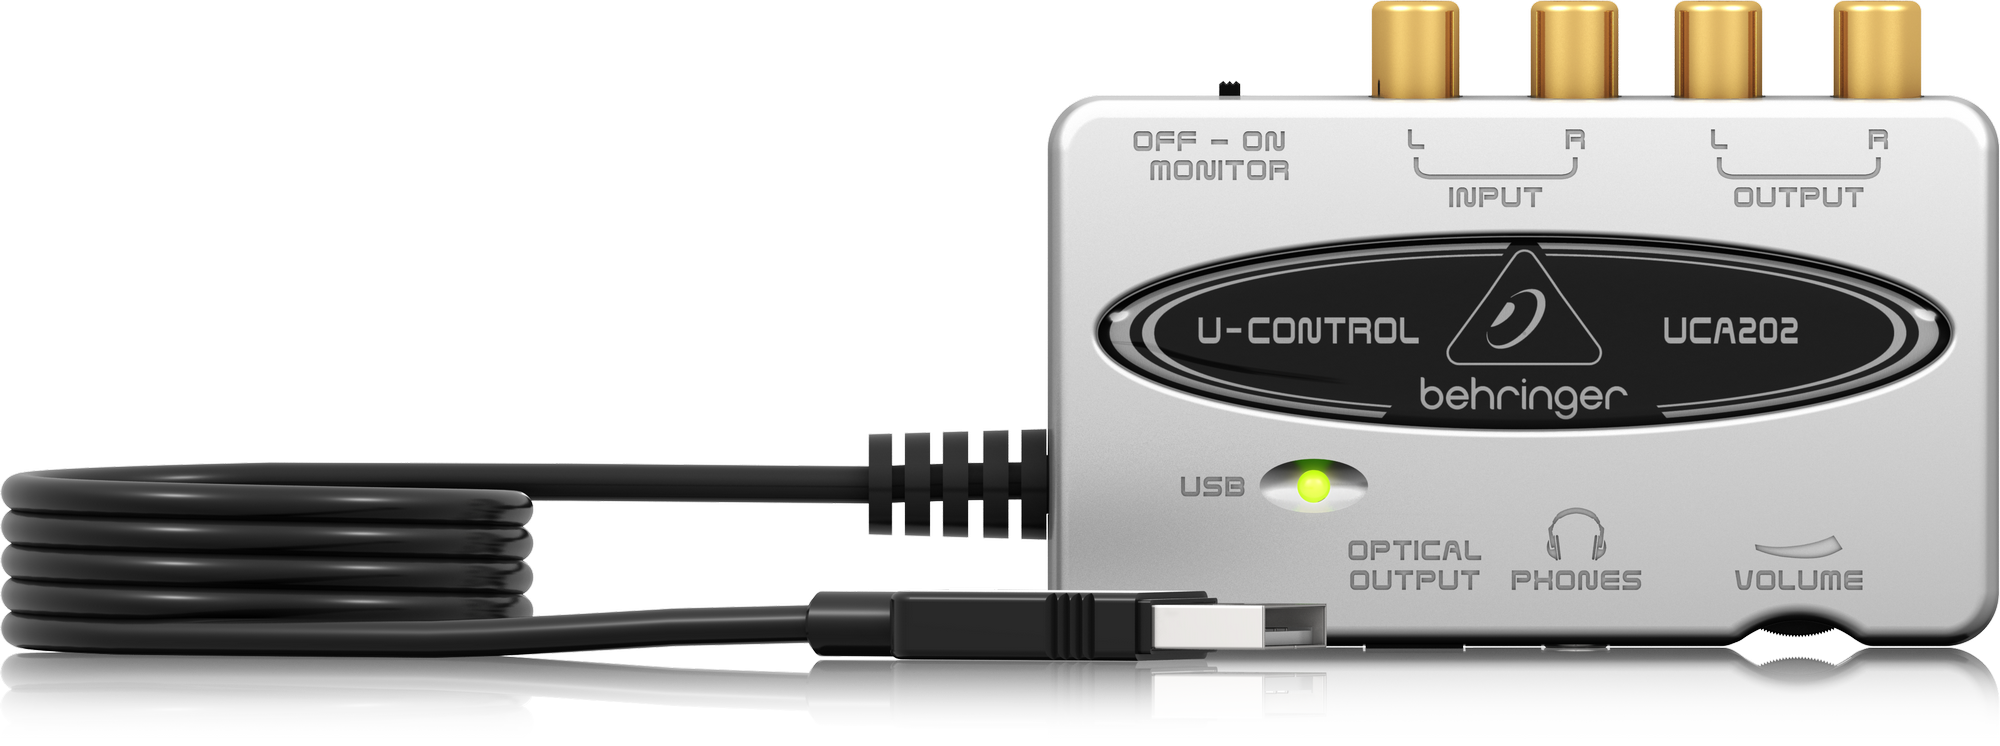 BEHRINGER UCA202 ULTRA LOW-LATENCY 2 IN/2 OUT USB/AUDIO INTERFACE WITH DIGITAL OUTPUT